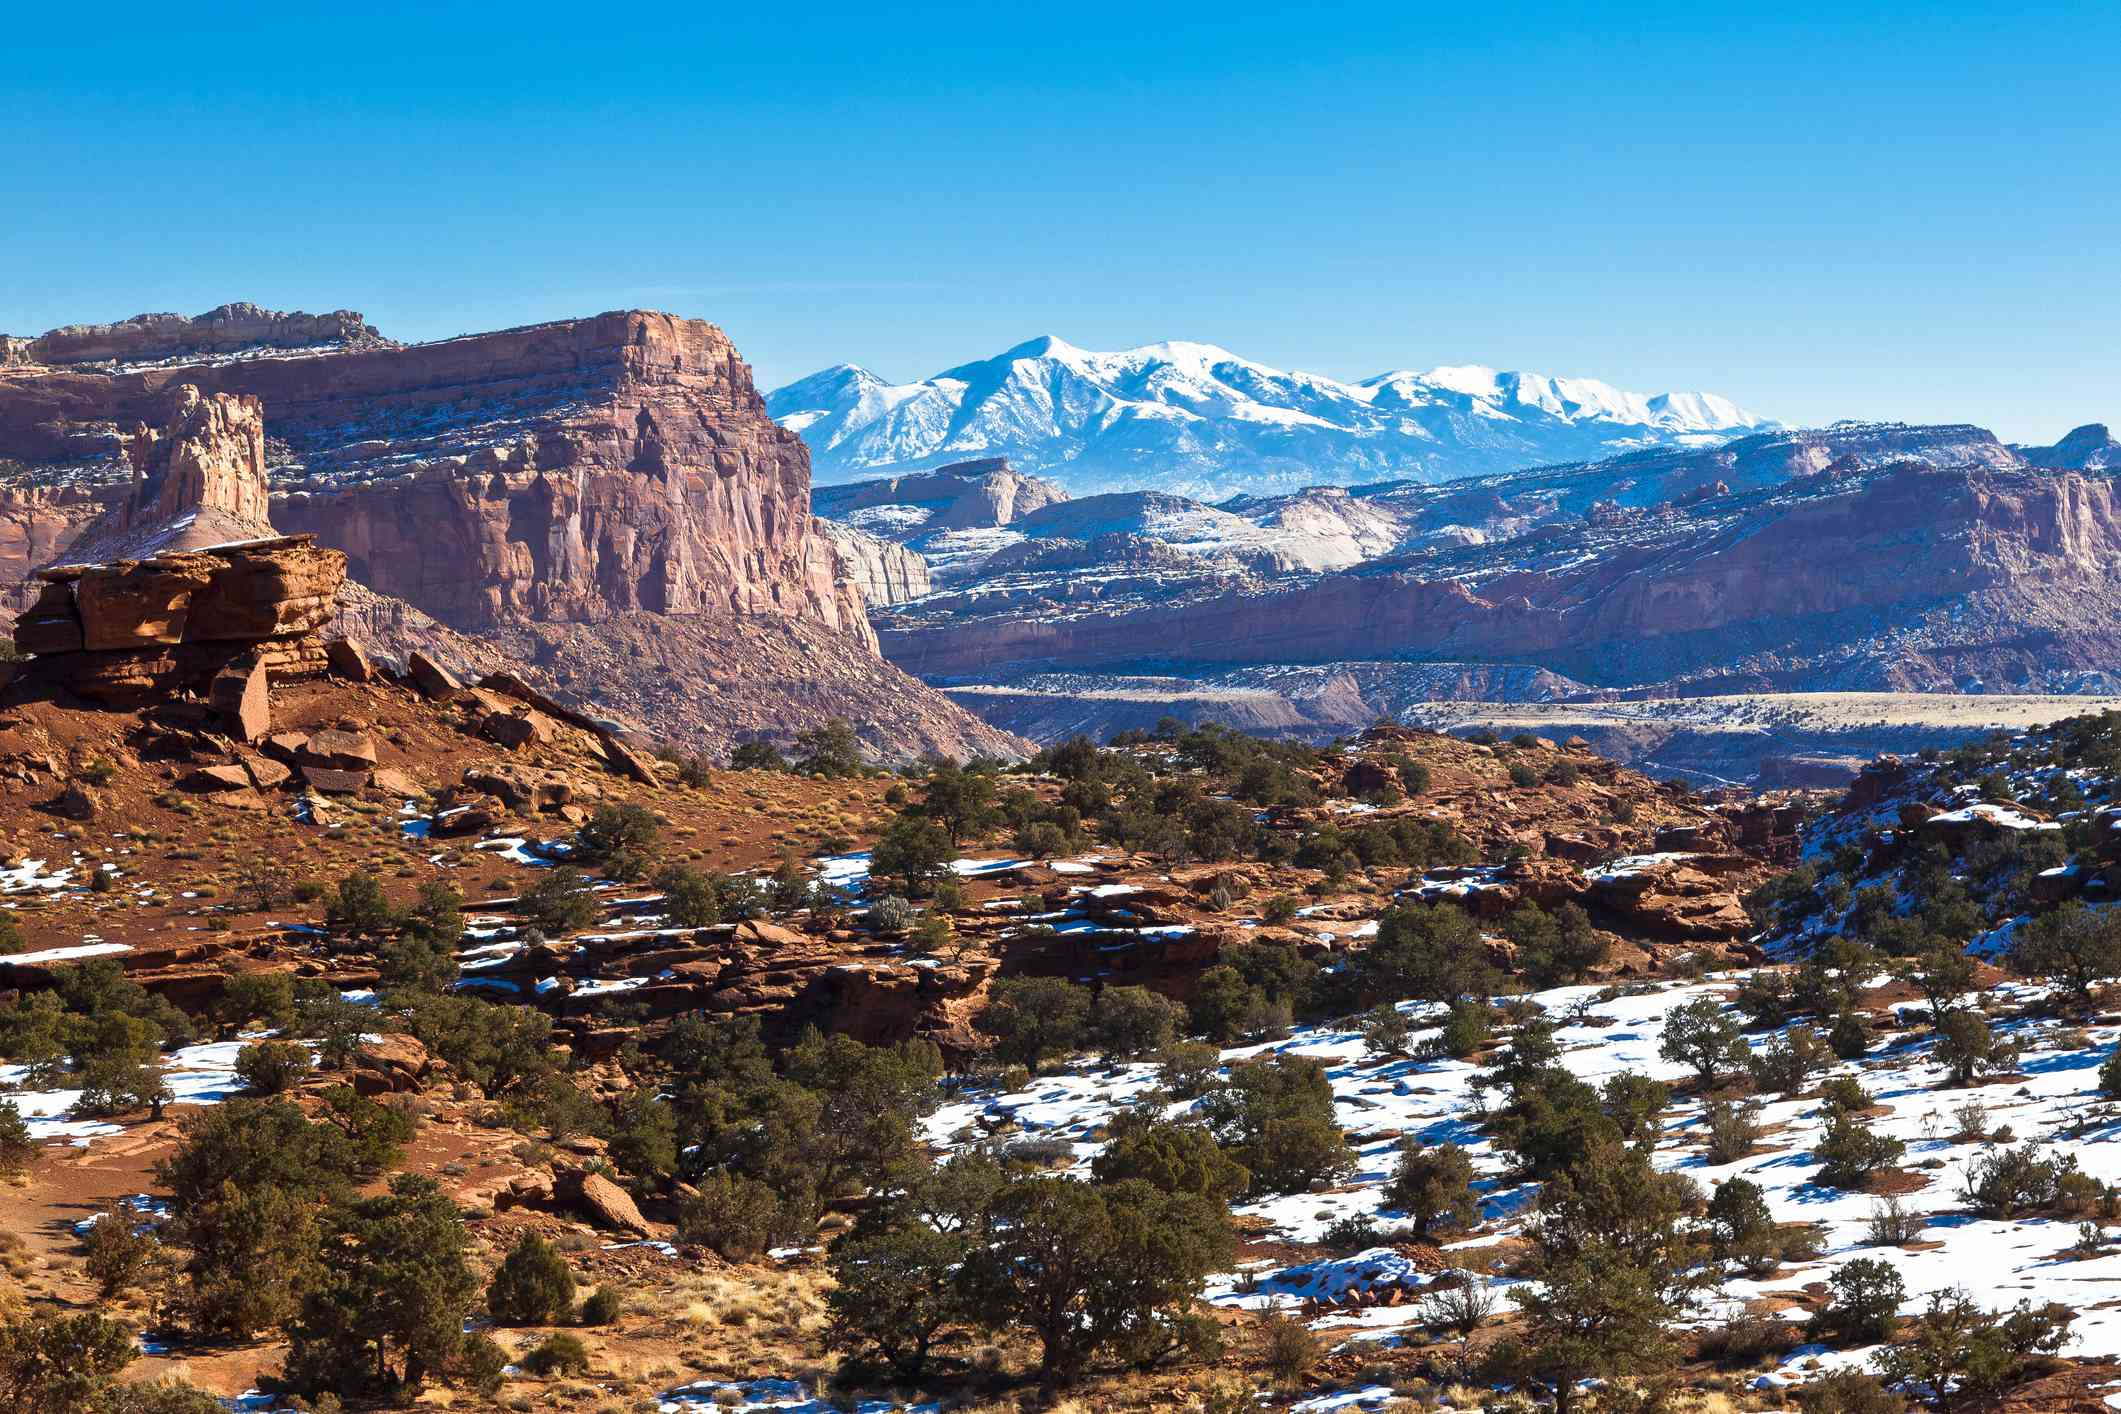 A view of the beautiful terrain in Capitol Reef National Park in Utah with snow capped mountains in the distance.